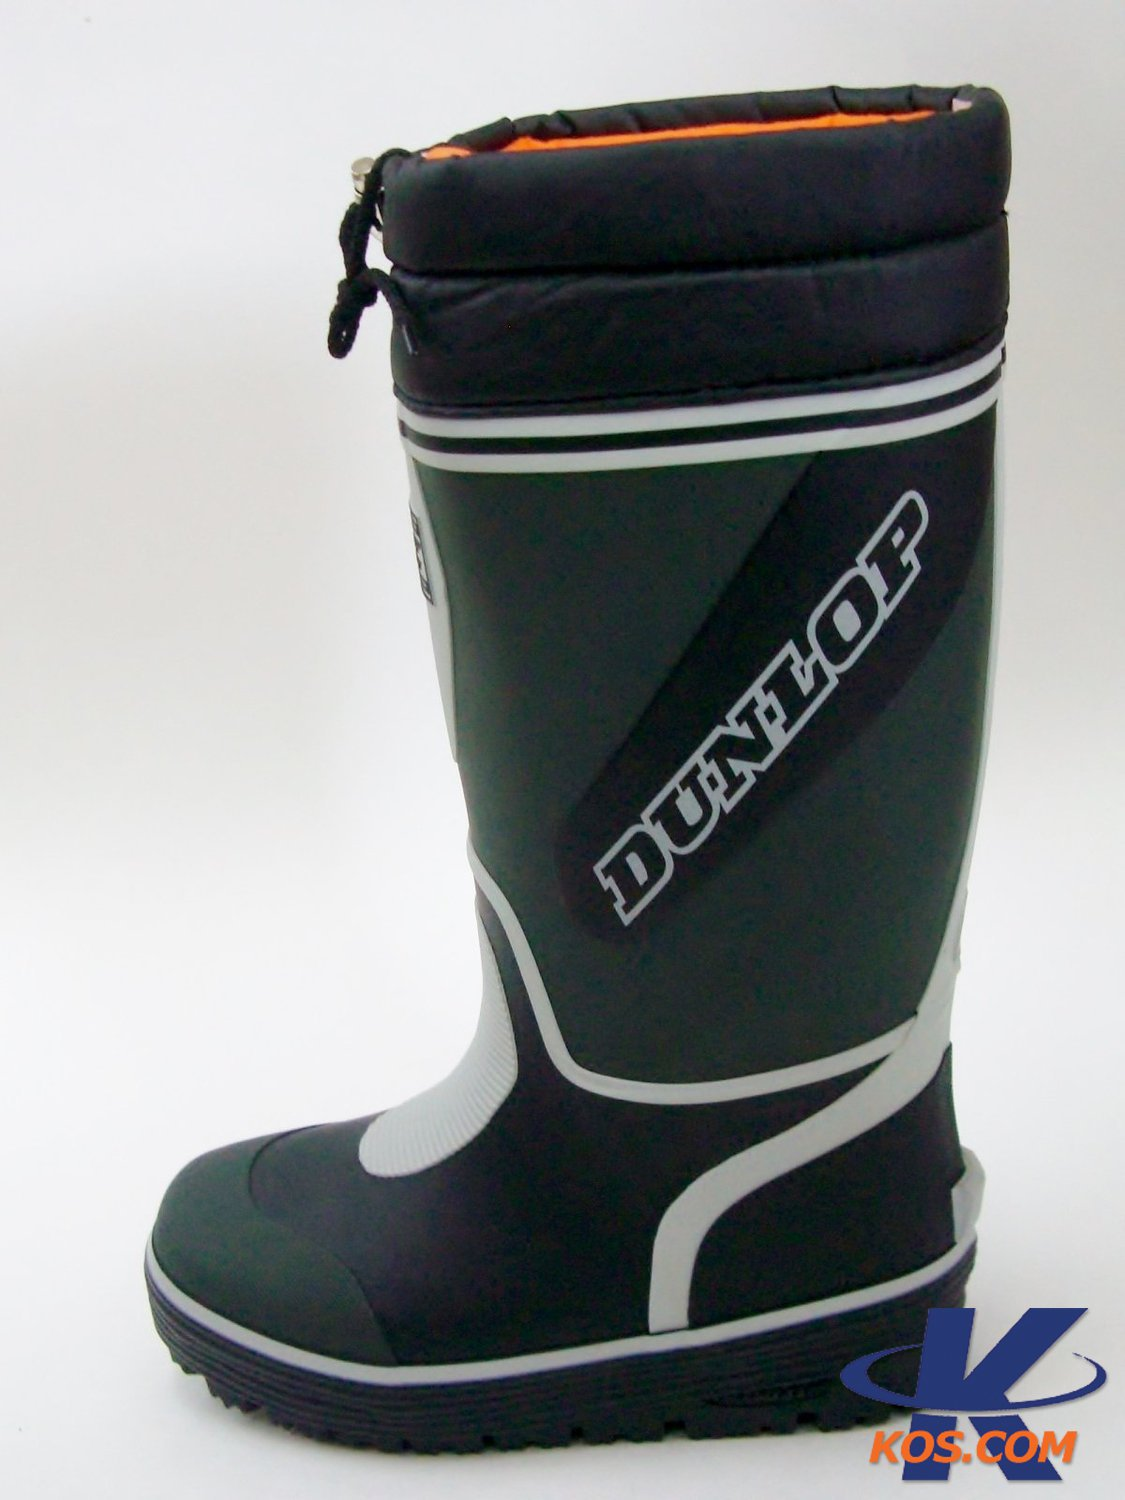 Dunlop Dolman G 290 Rubber Boots With Socks Winter Boots